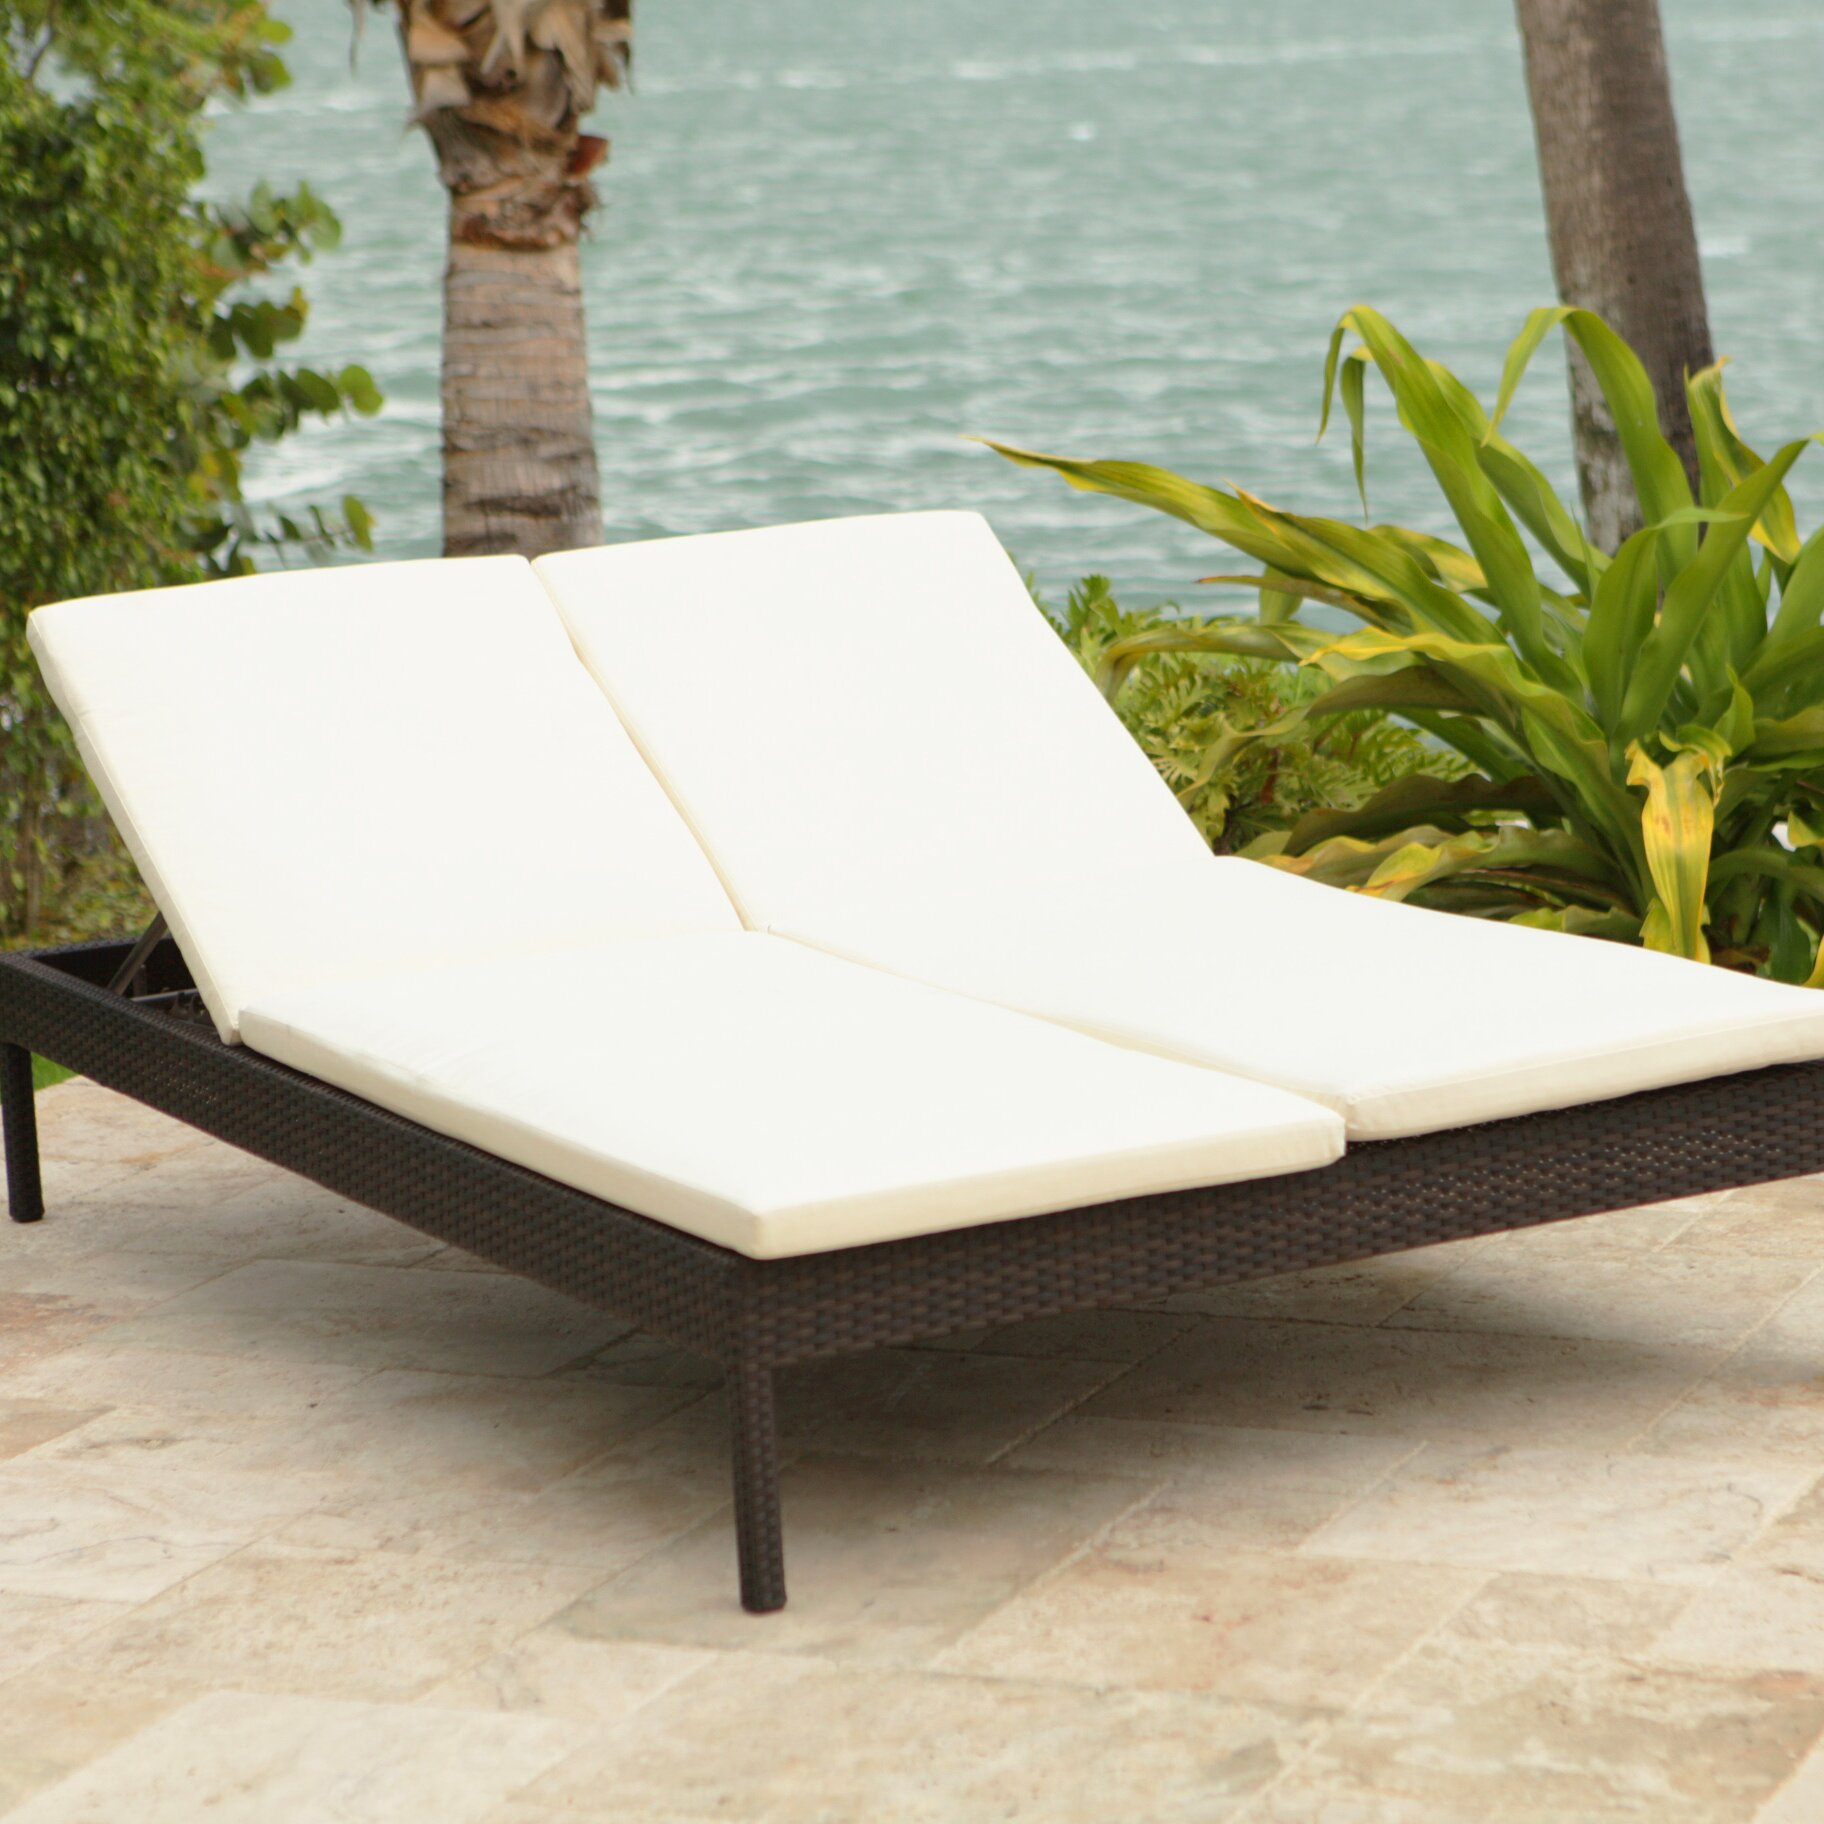 Oversized chaise lounge chairs - Brayden Studio Reg Roque Double Chaise Lounge With Cushion